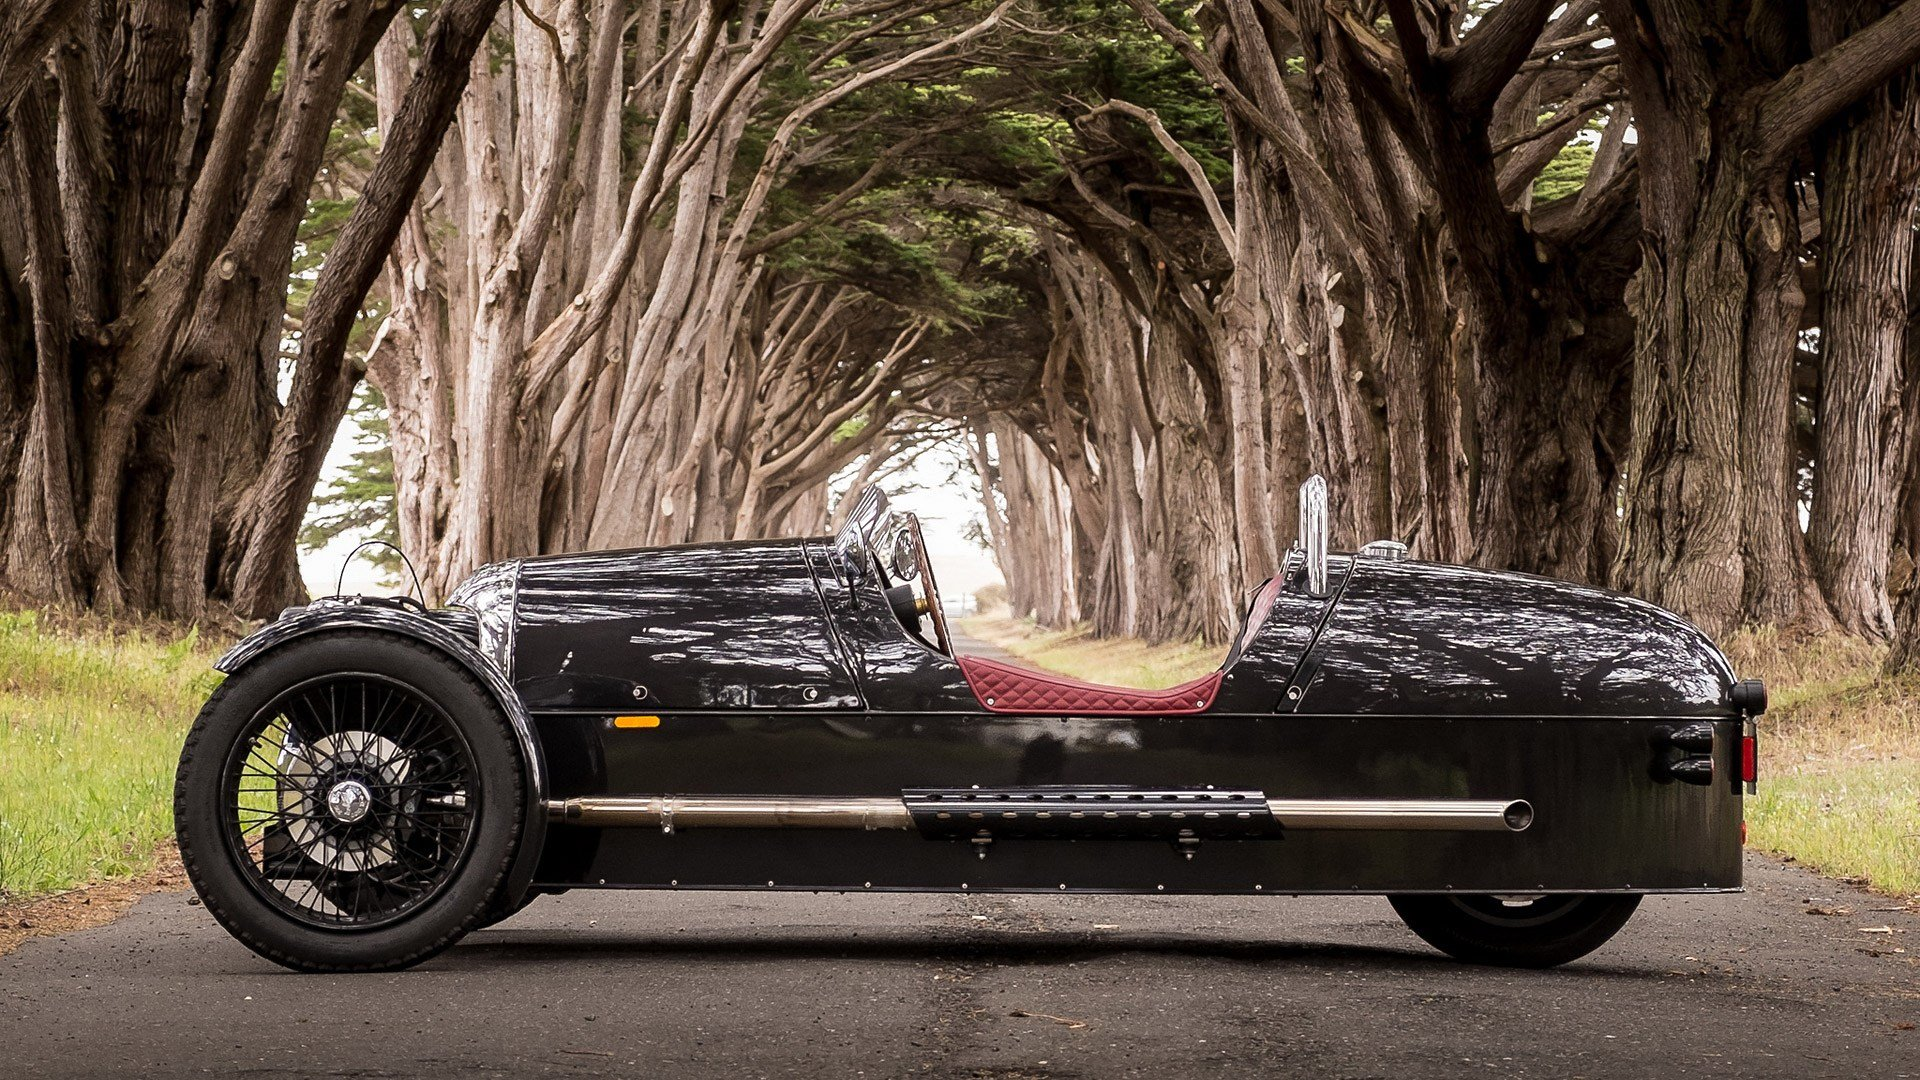 Latest 2011 Morgan 3 Wheeler Wallpapers Hd Images Wsupercars Free Download